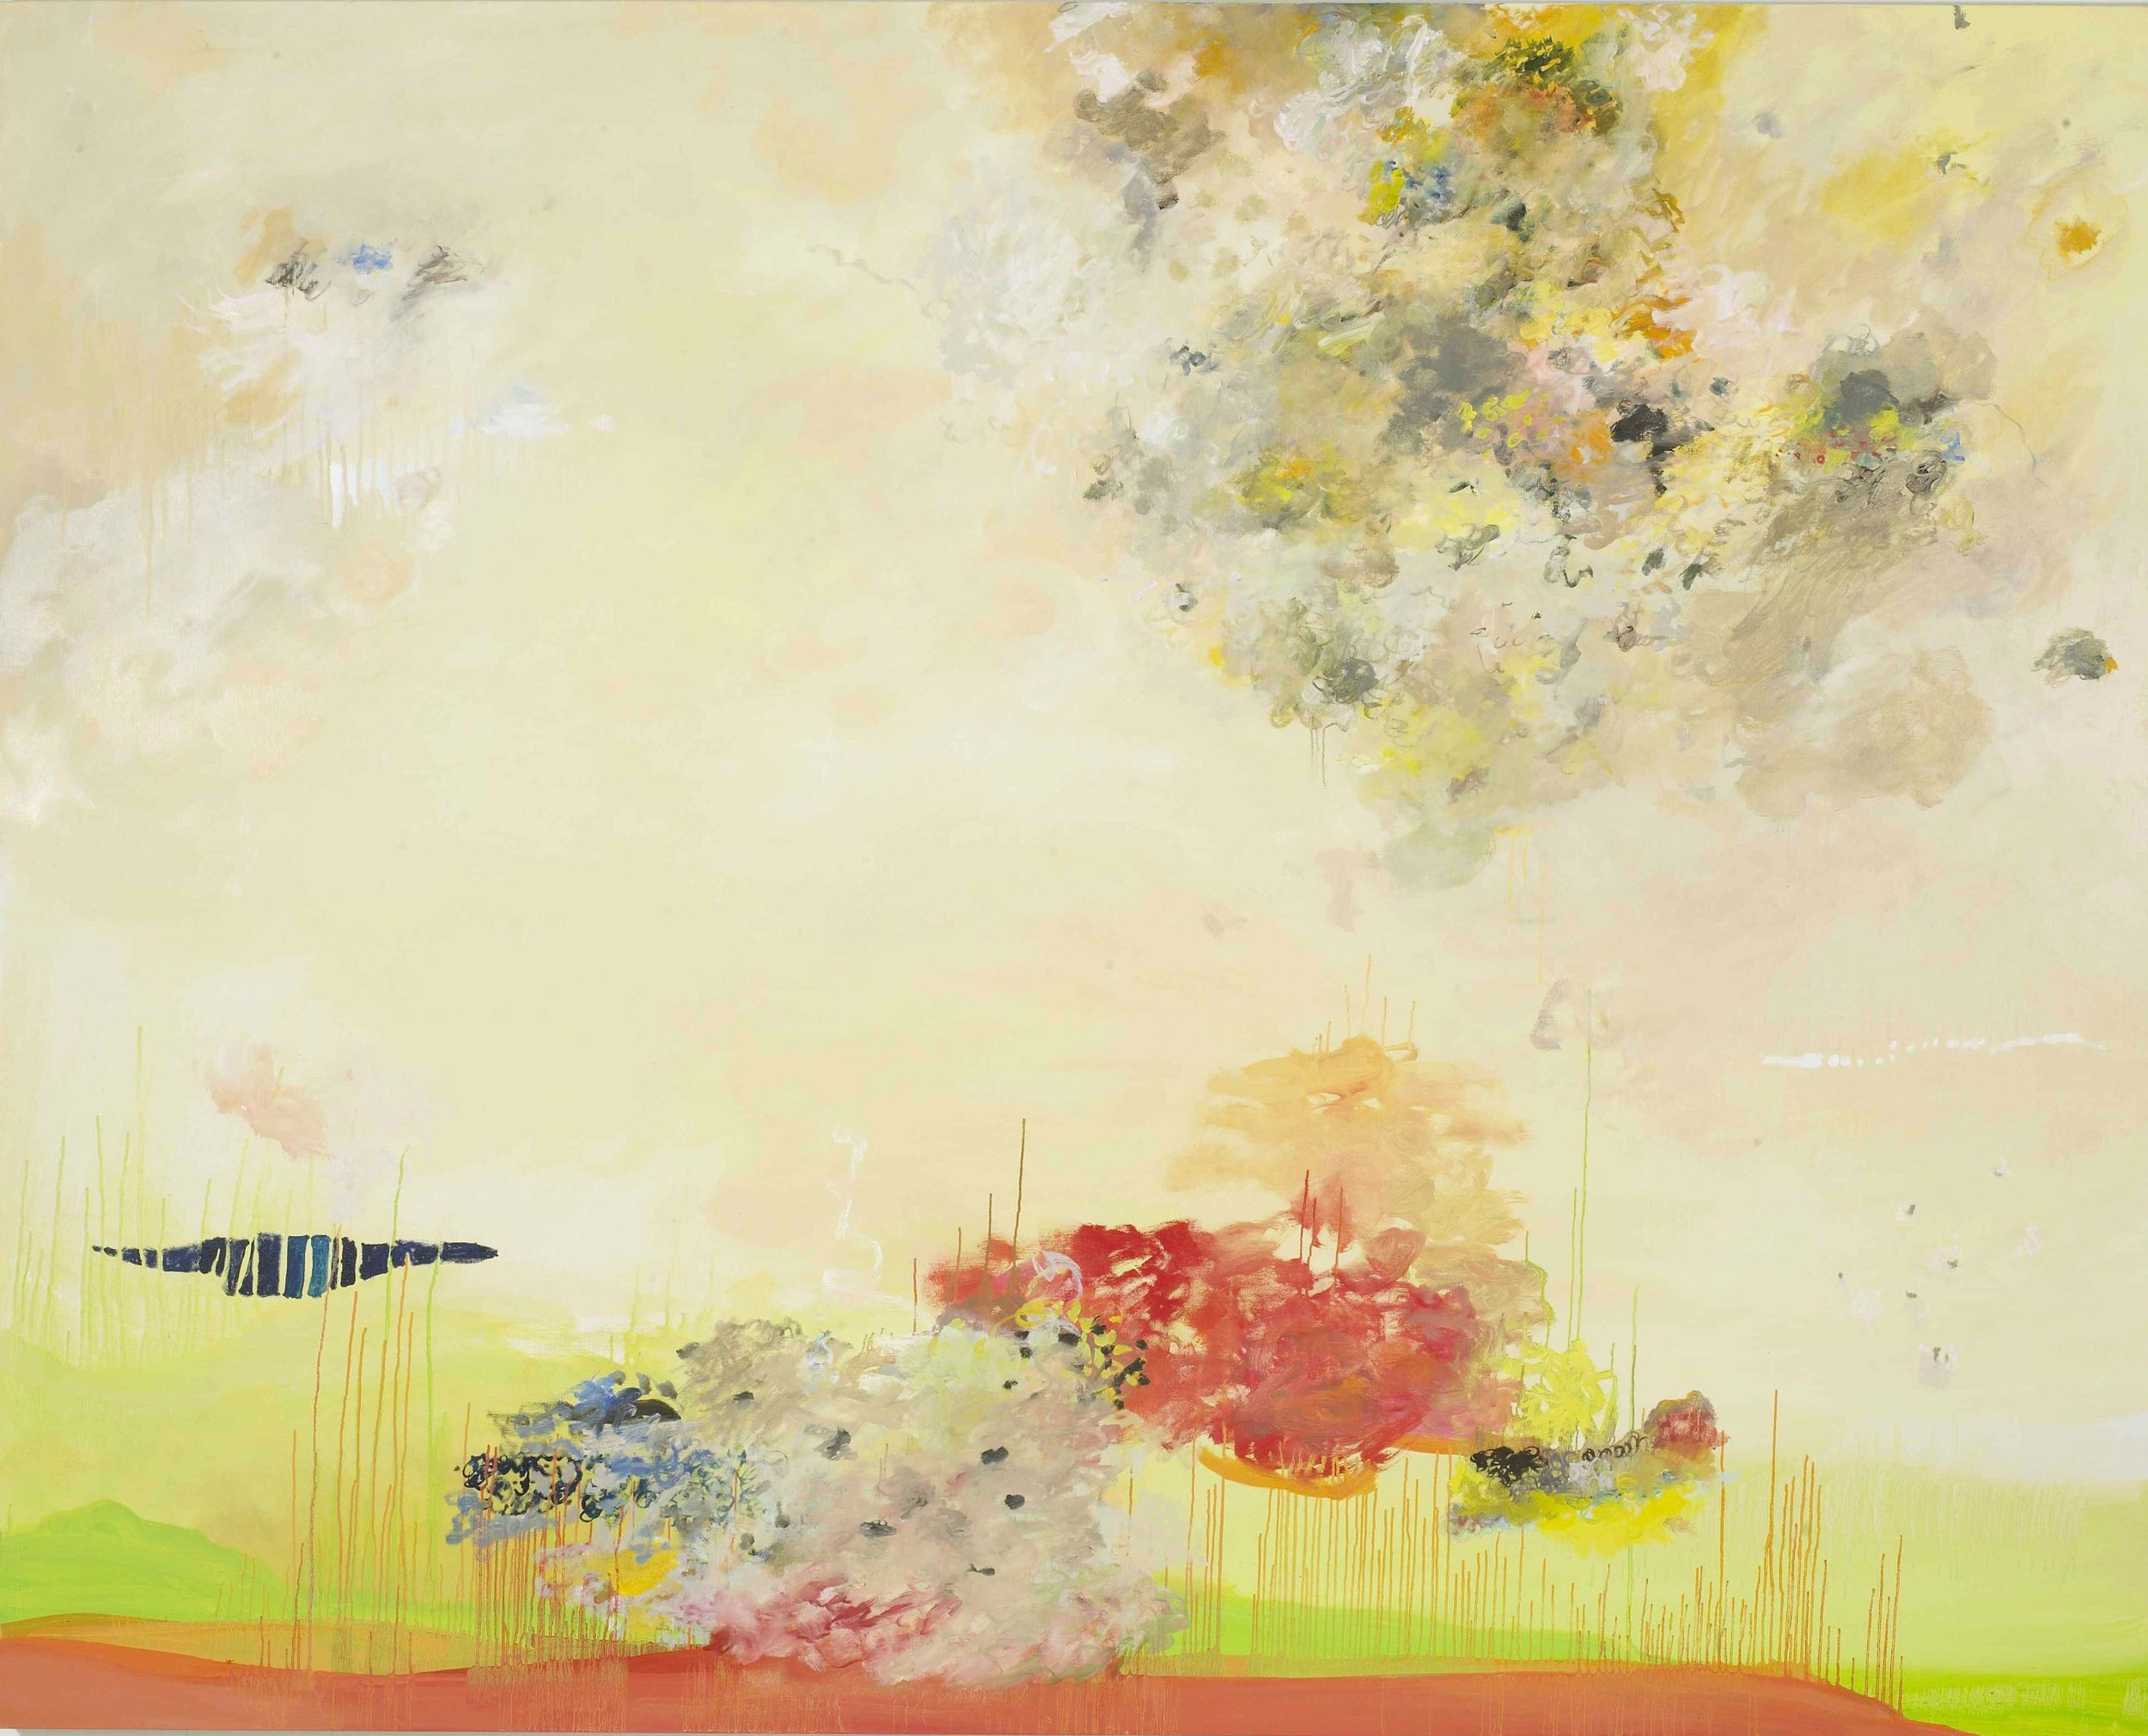 Creamy Drama II , 2010  Oil on linen  72 x 90 inches